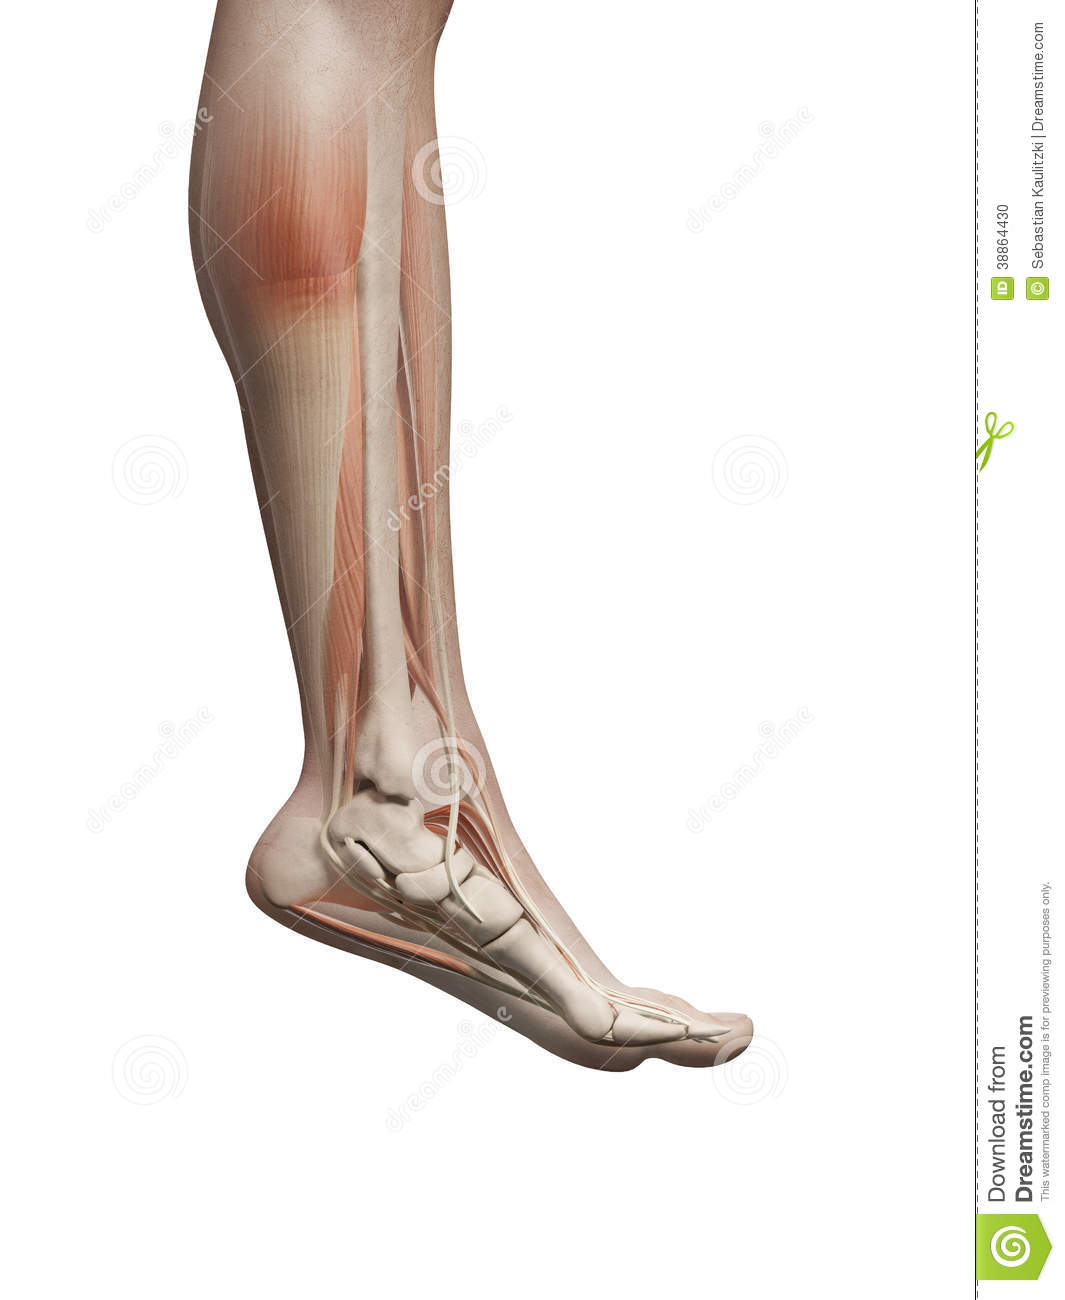 The male leg muscles